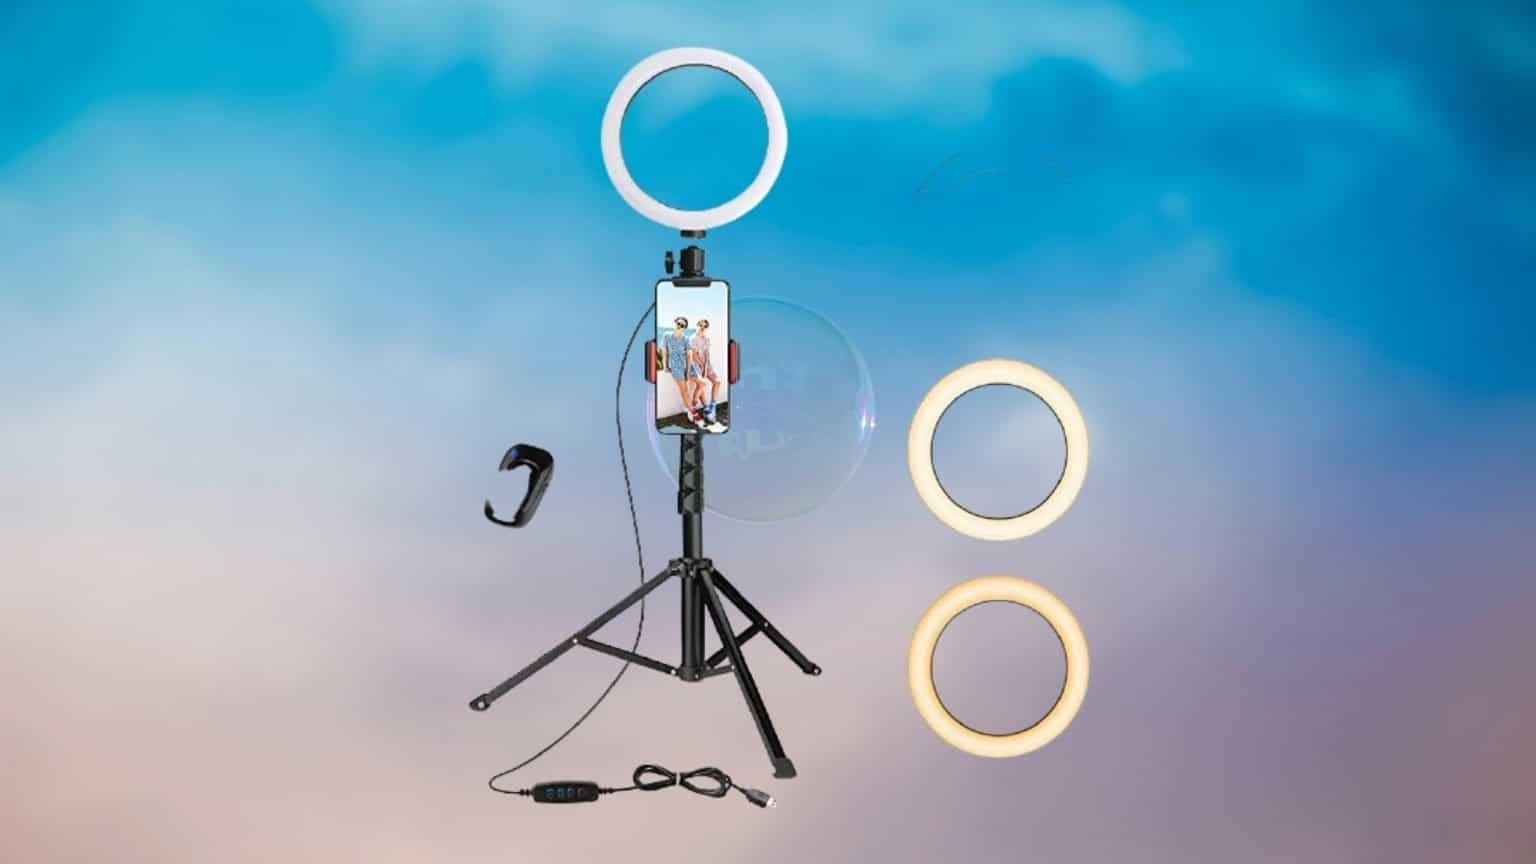 8 Selfie Ring Light with Tripod Stand